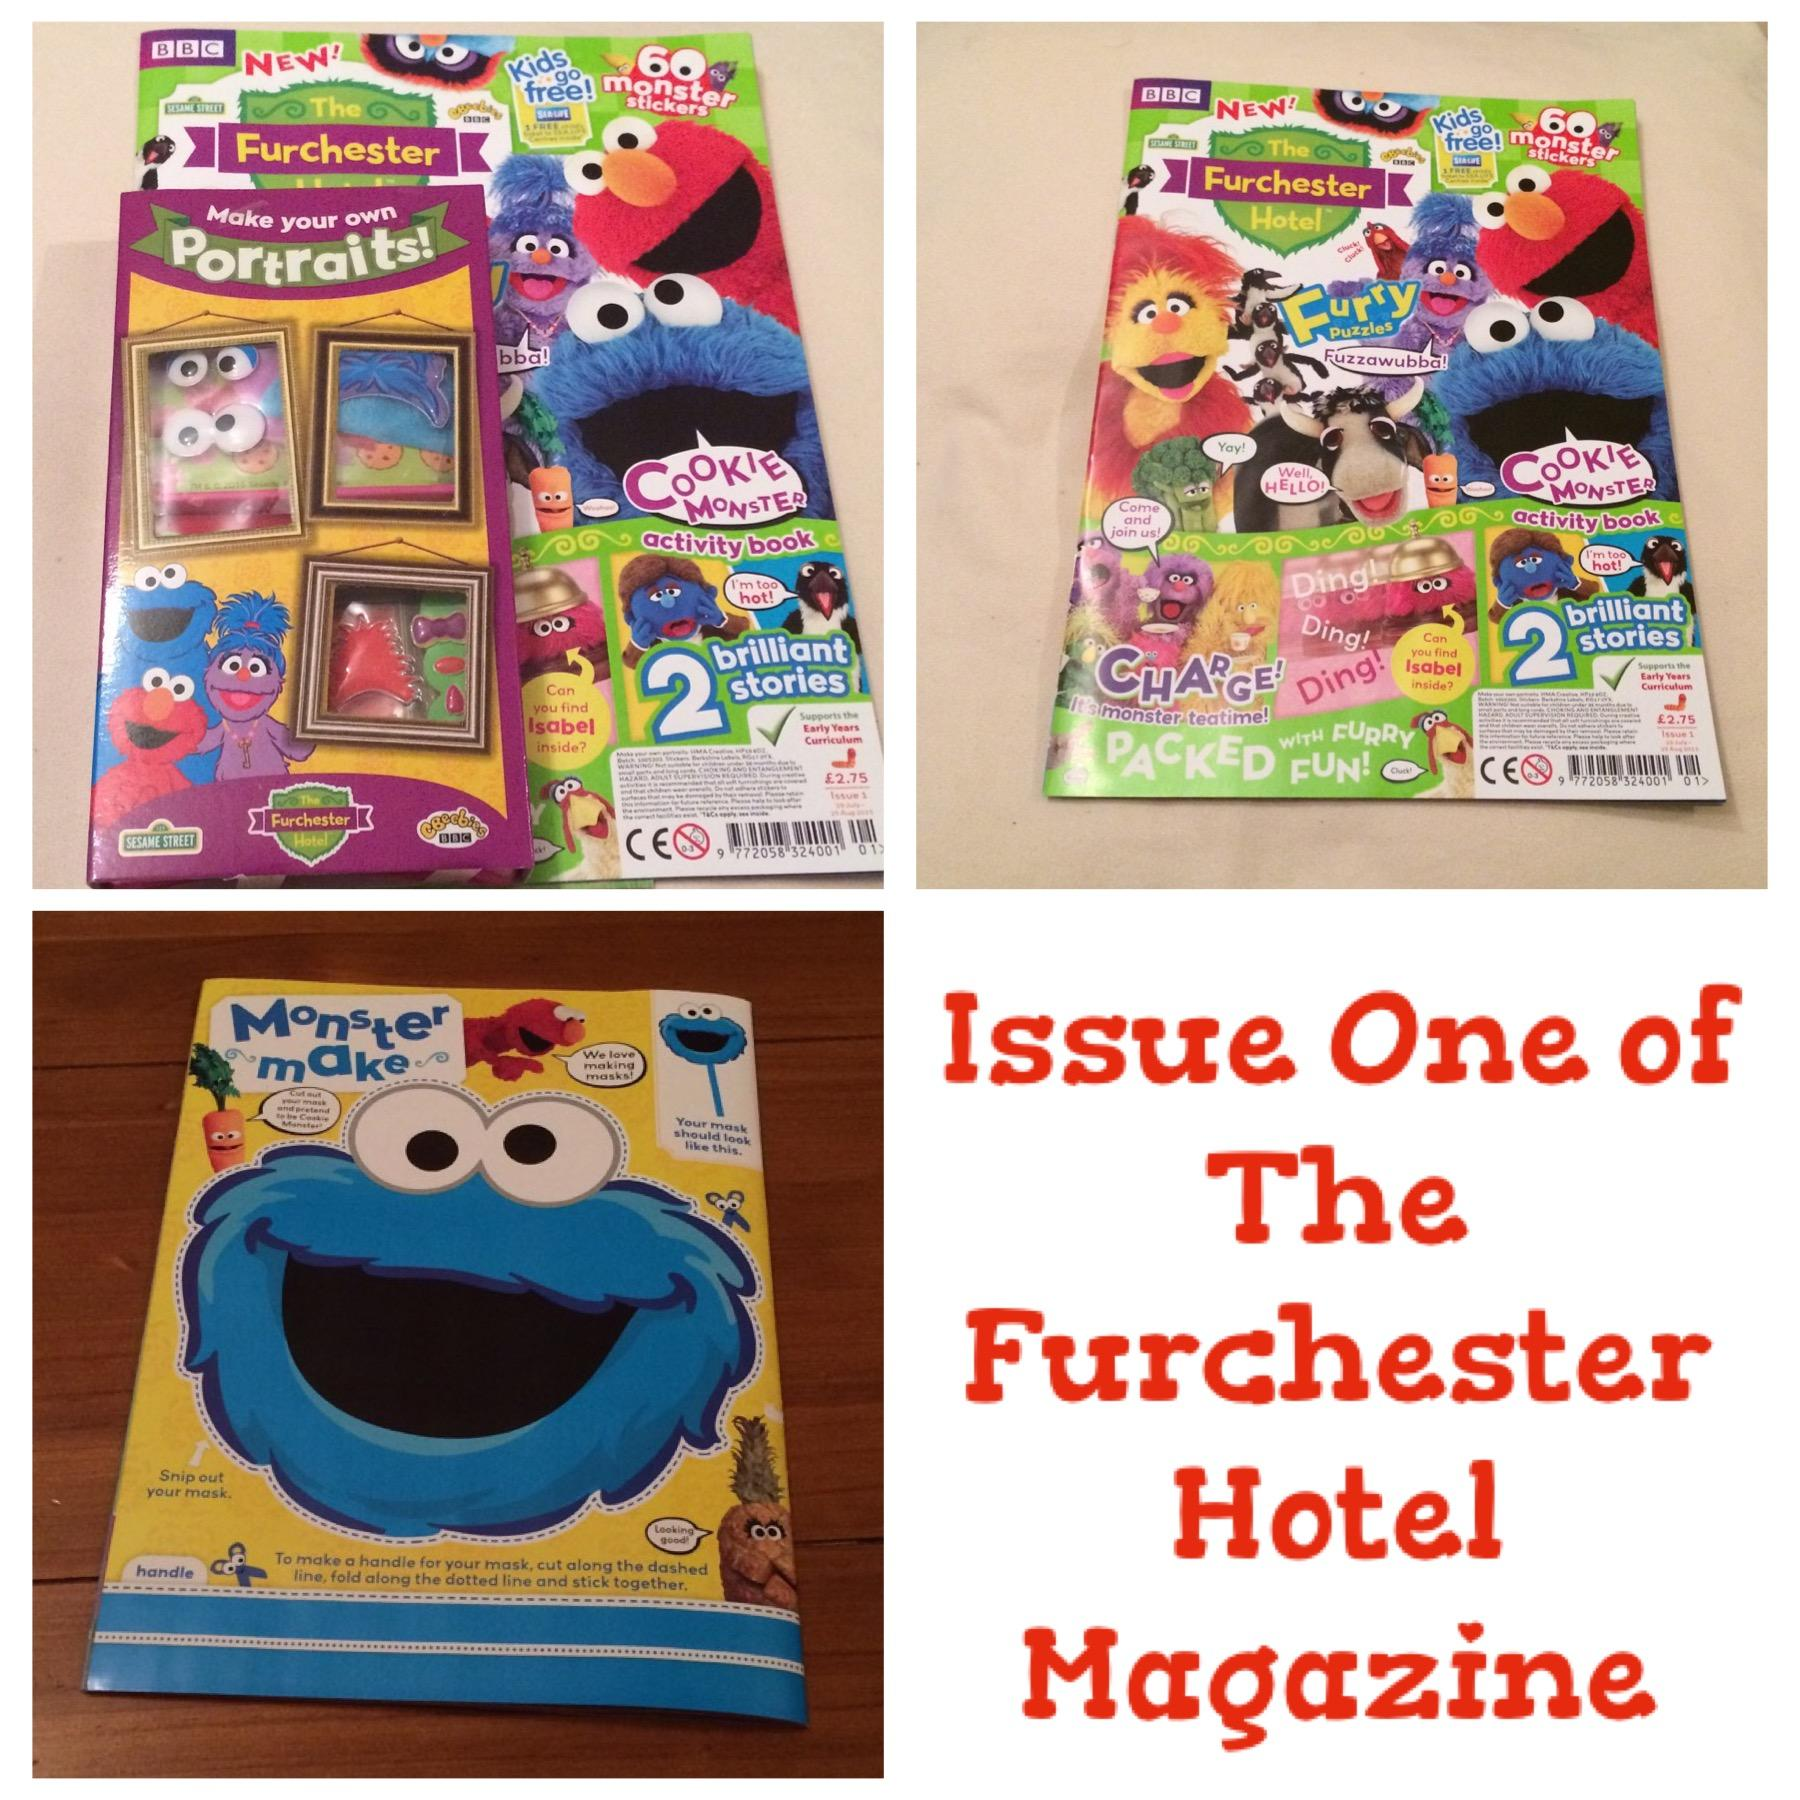 Issue 1 of The Furchester Hotel Magazine Review